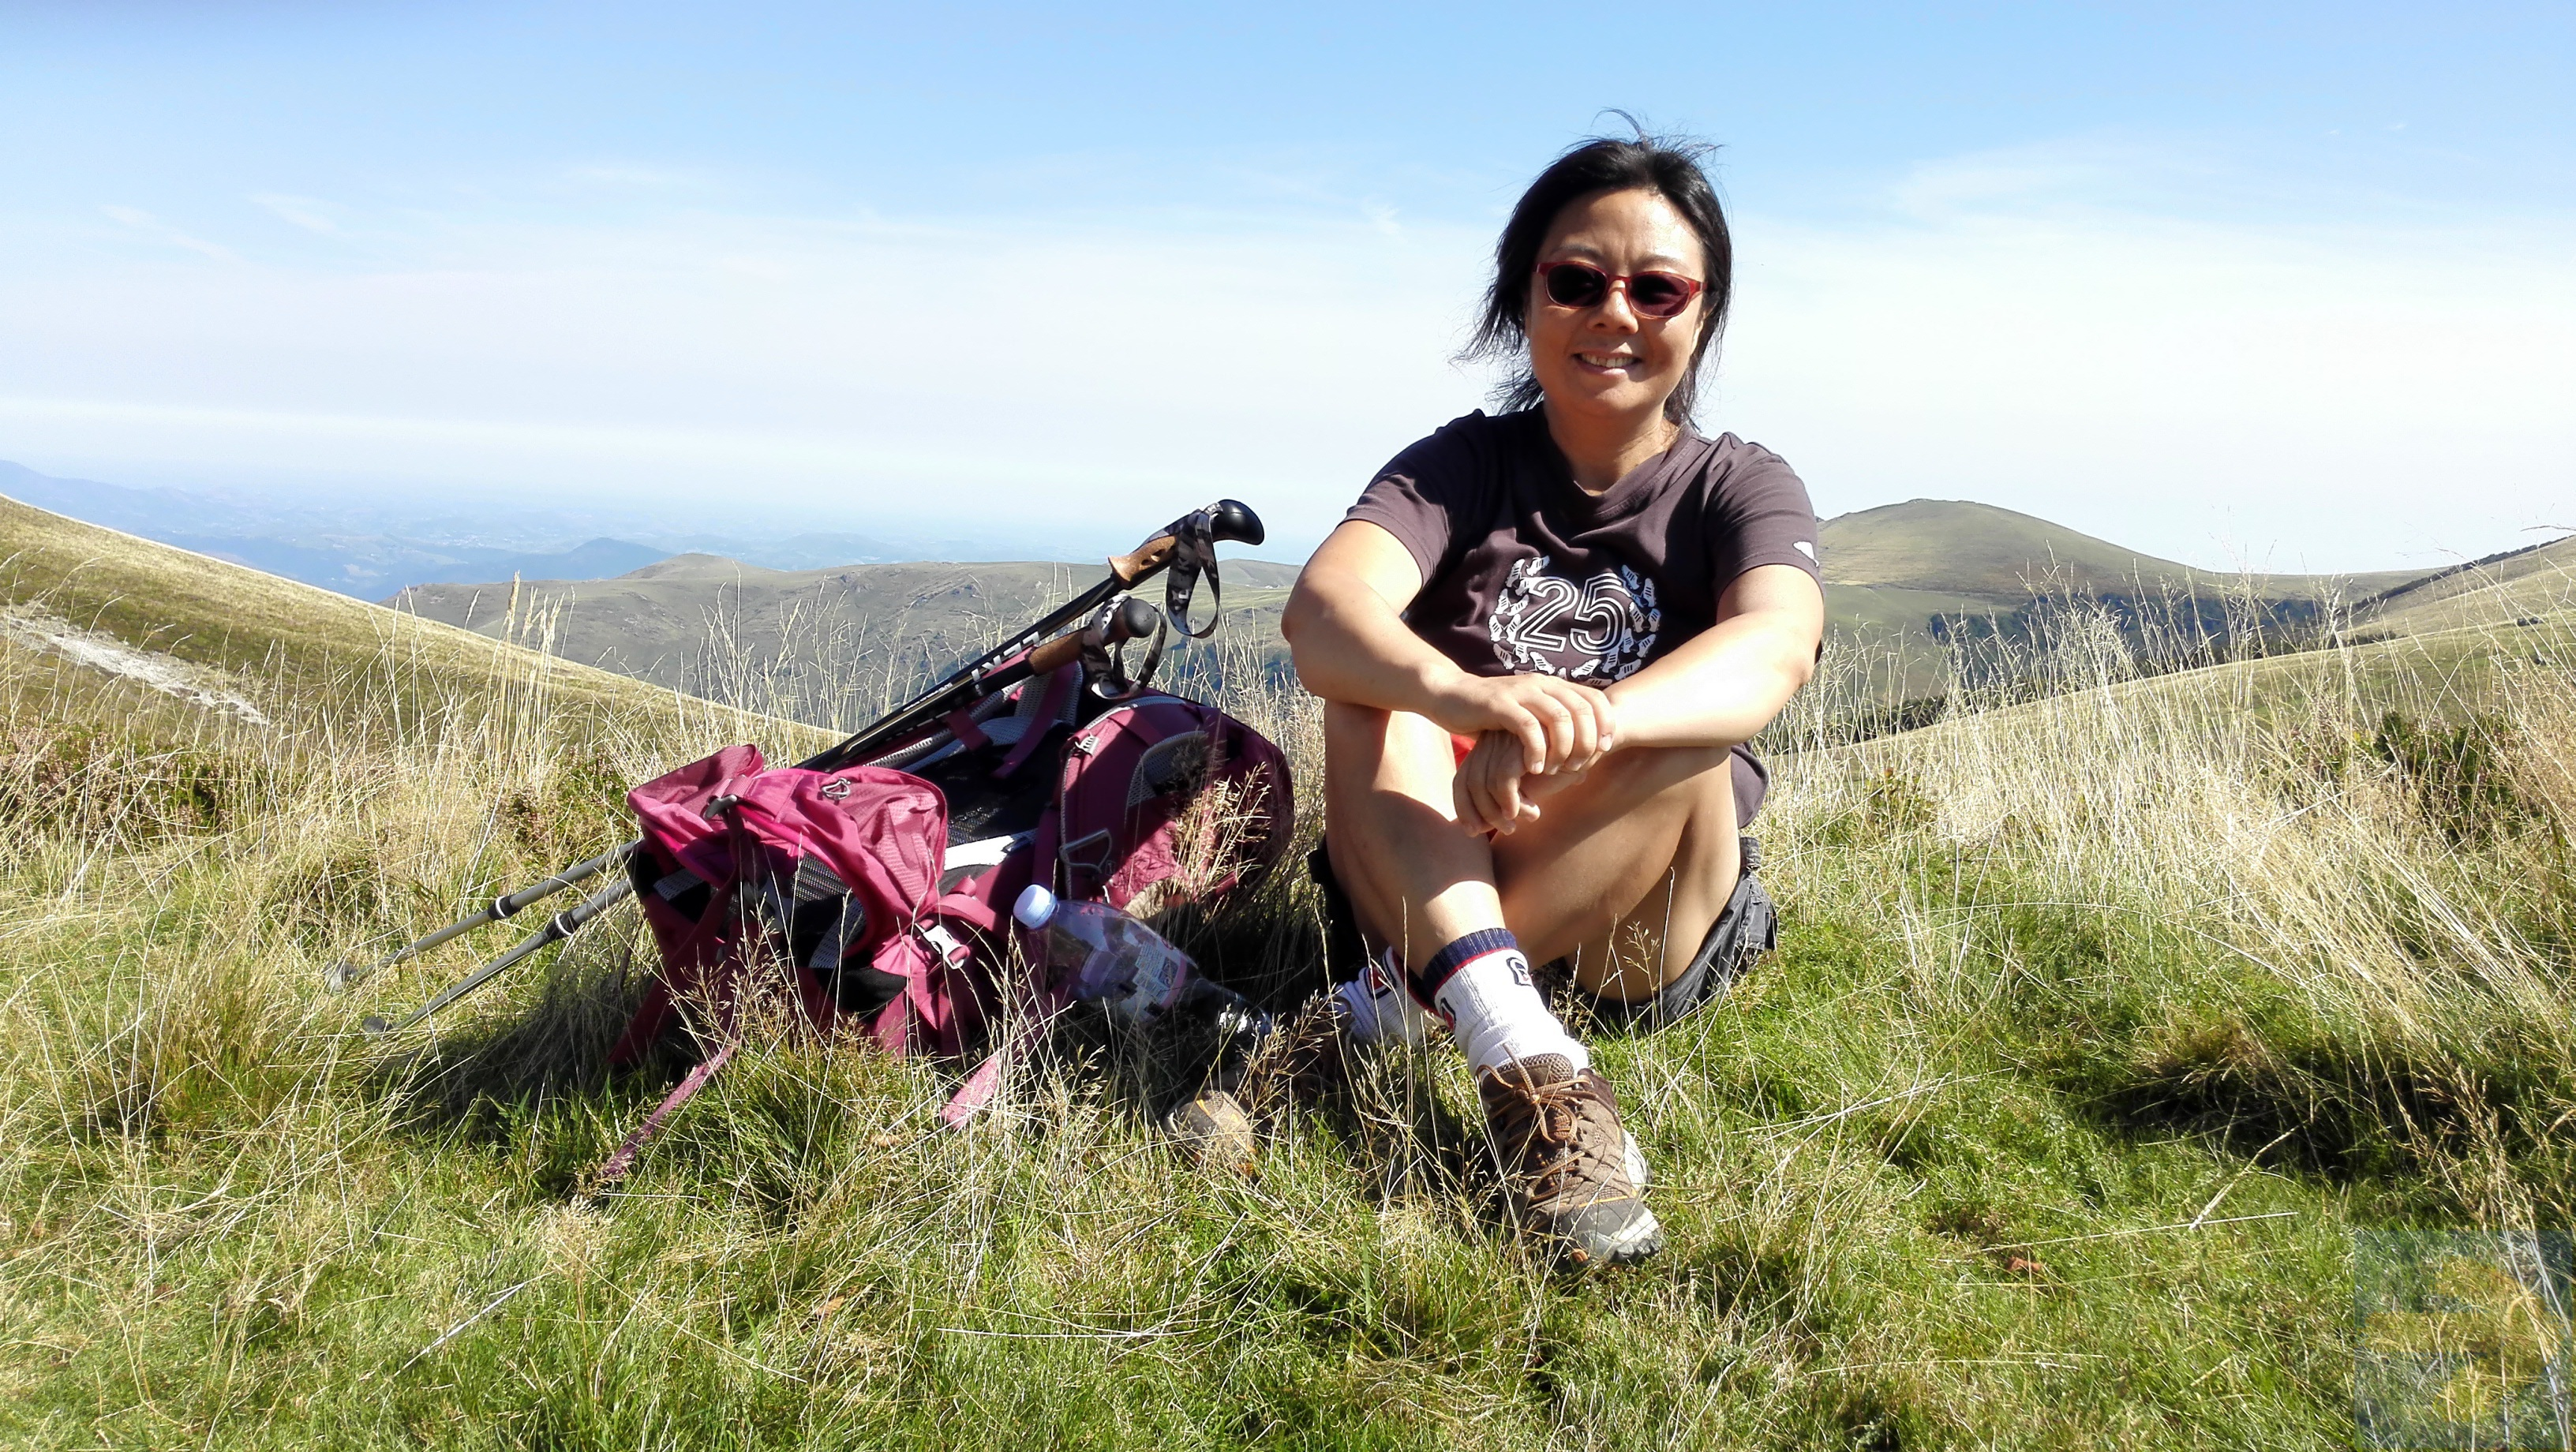 9th Sep. the very first day of my very first camino - Bathed in the Pyrenees sunshine